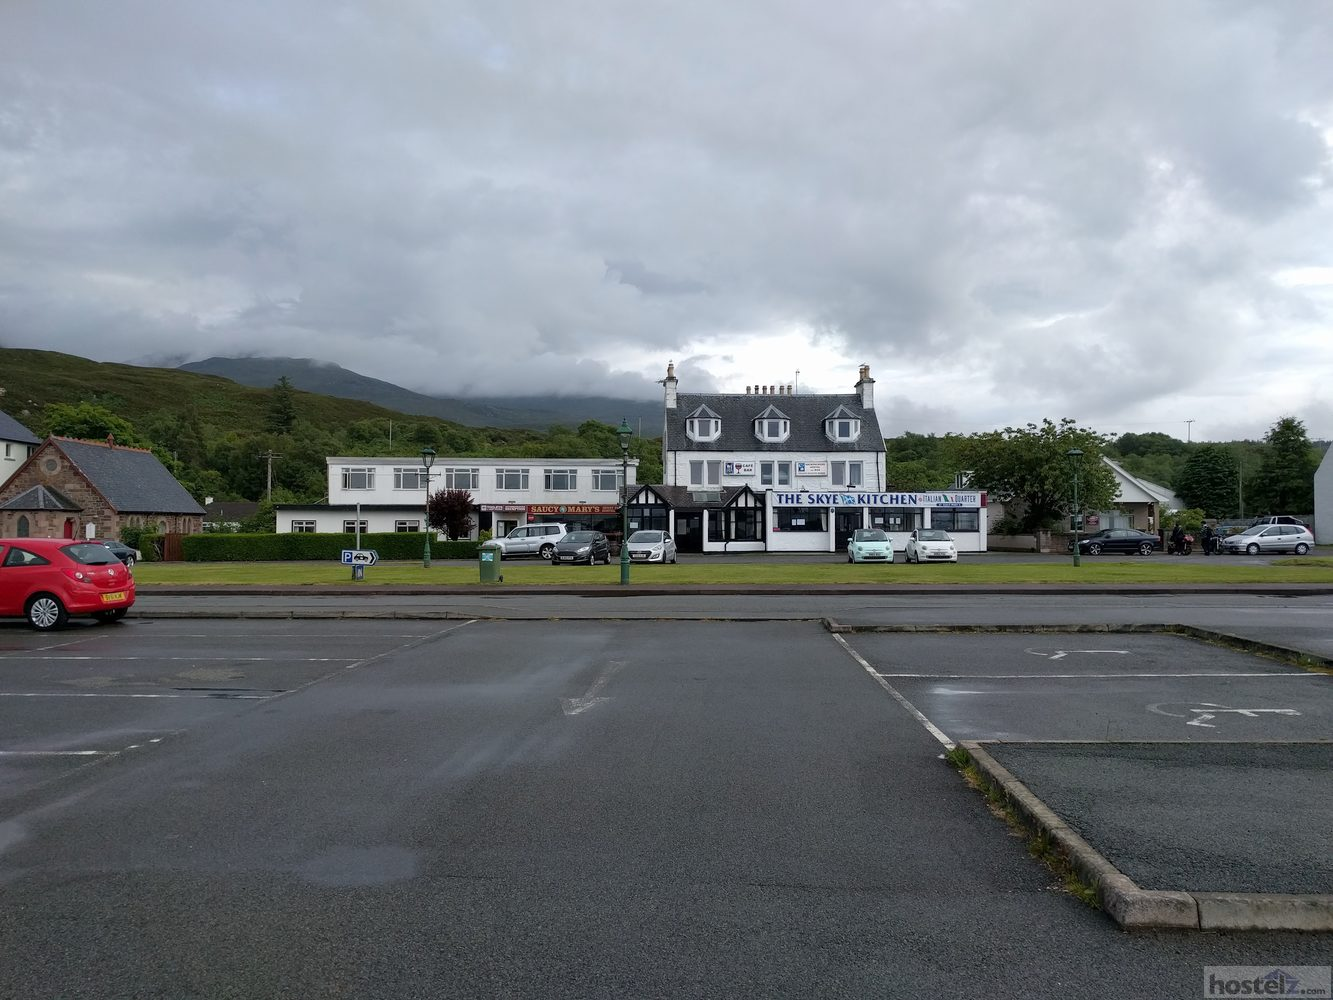 Saucy Mary's Lodge - Isle Of Skye, Scotland Reviews ...